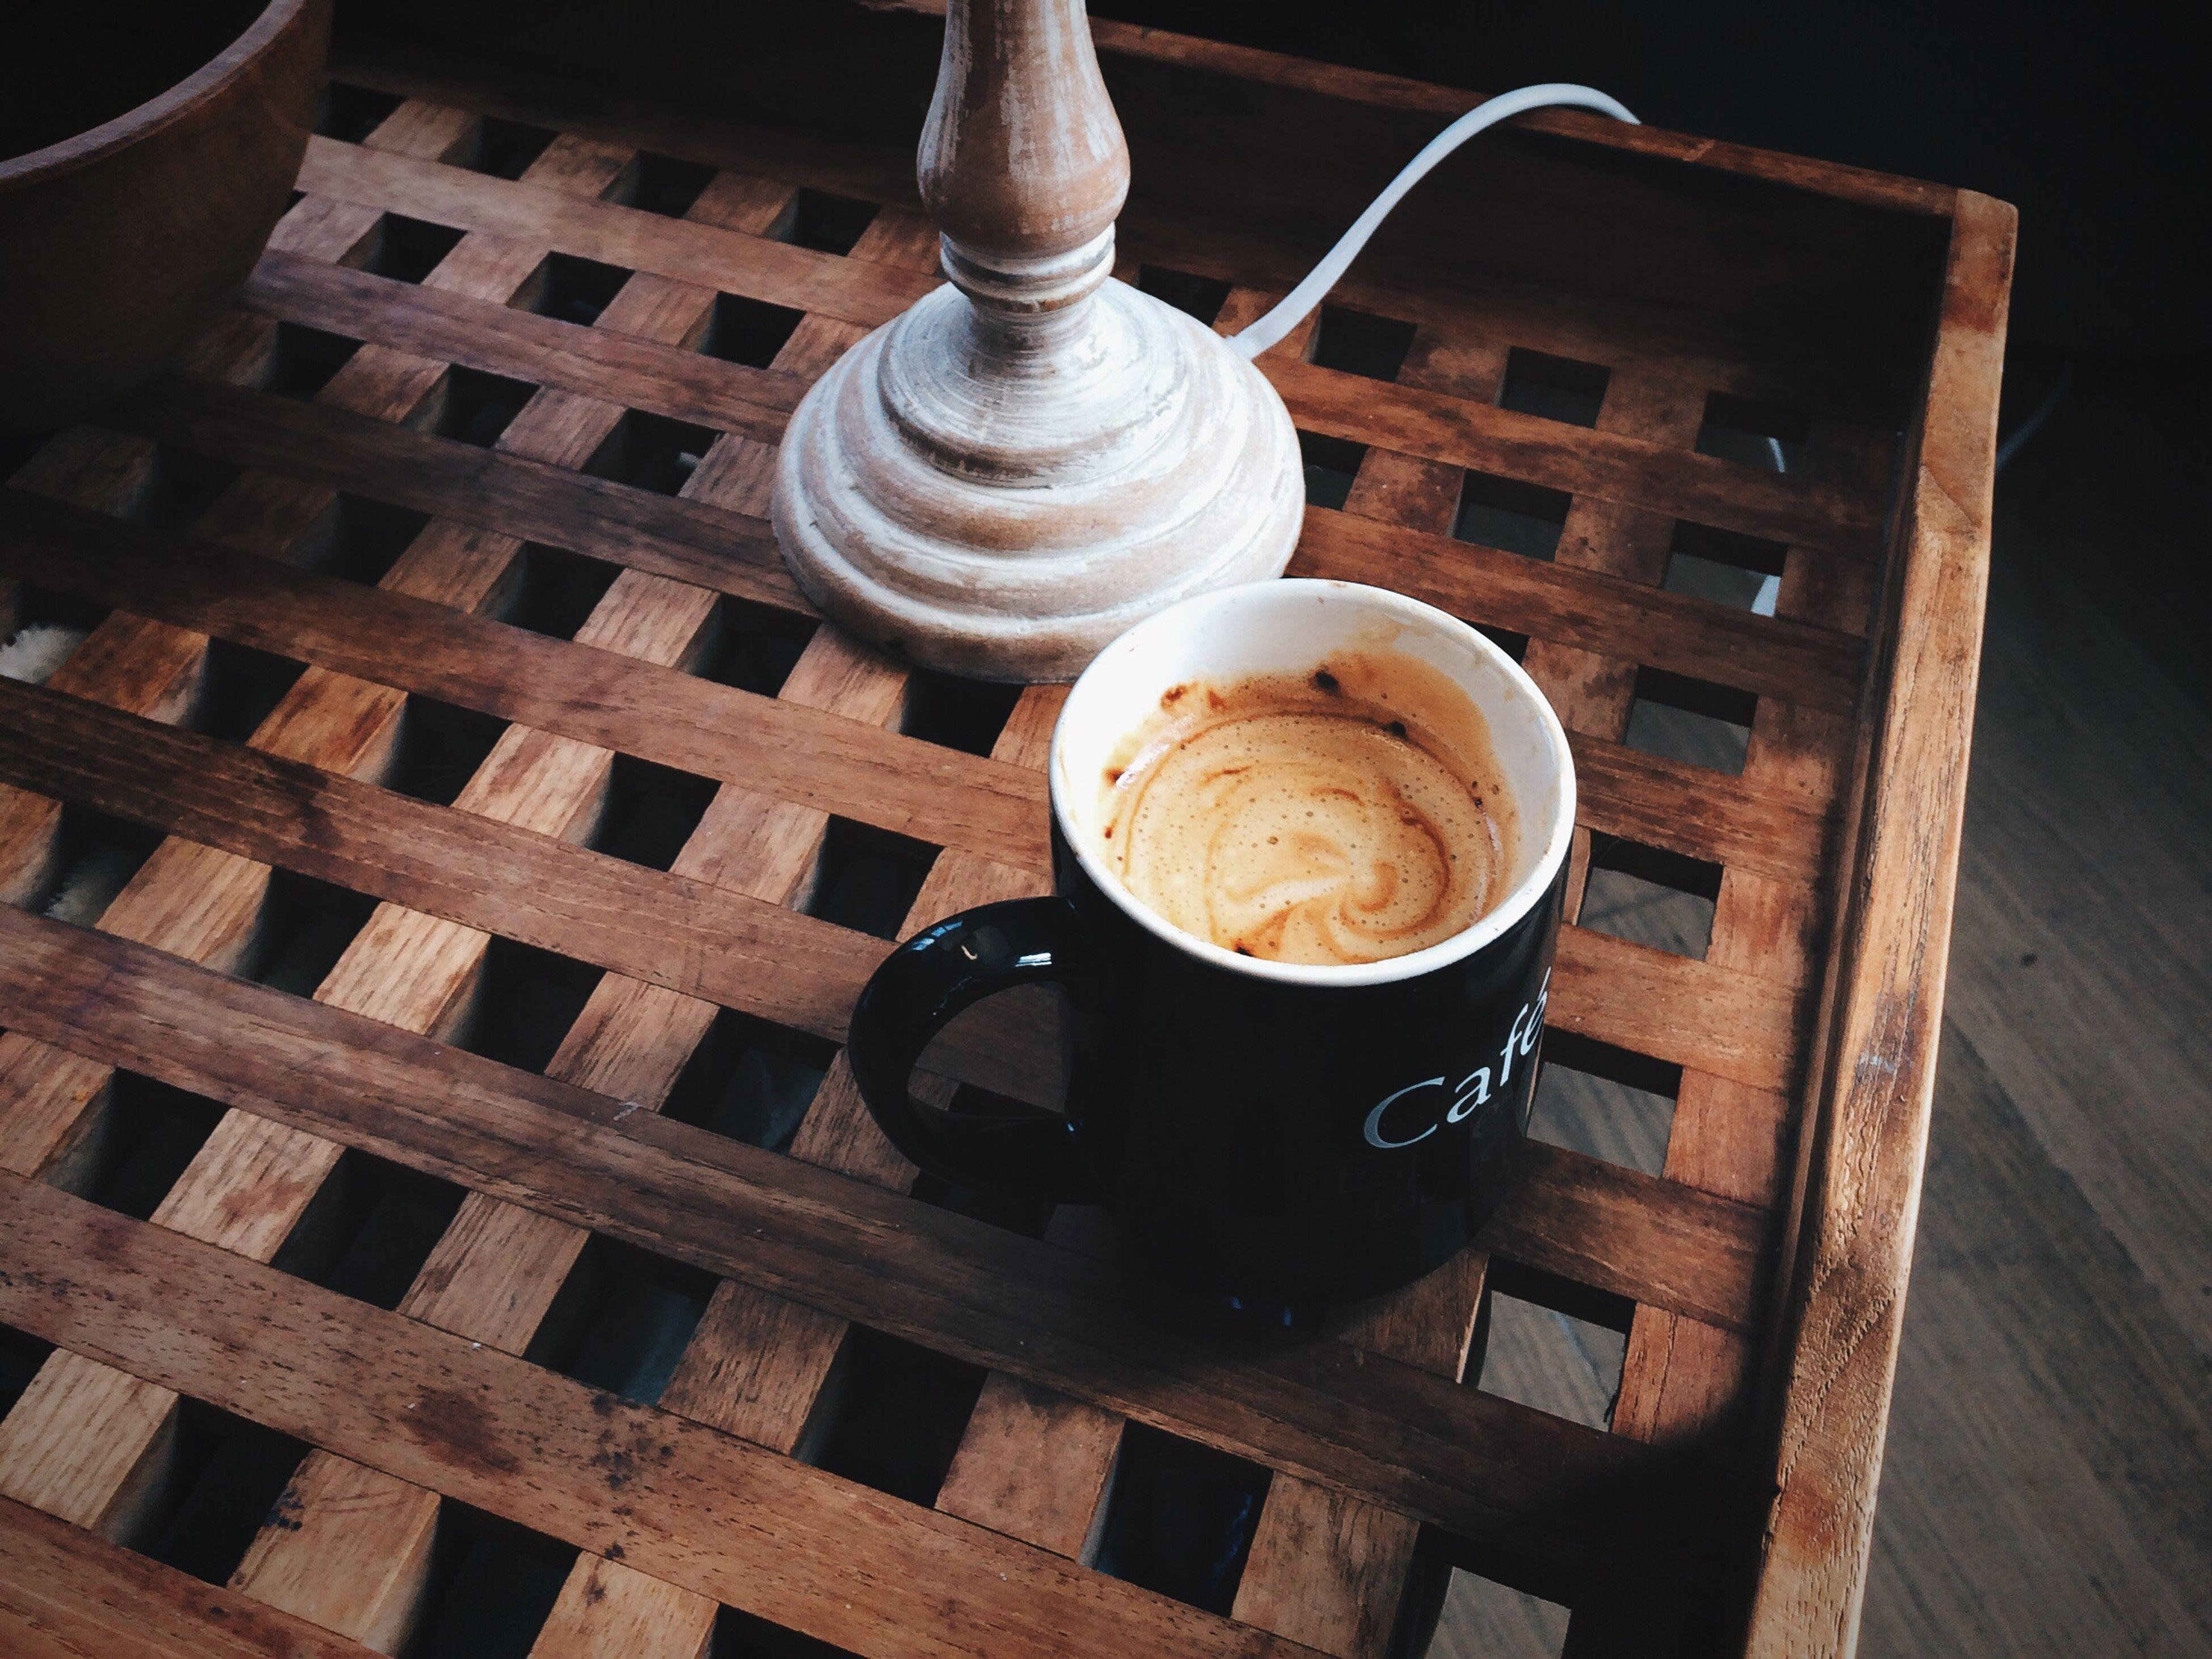 food and drink, indoors, still life, table, high angle view, drink, wood - material, coffee cup, close-up, coffee - drink, spoon, no people, built structure, day, metal, refreshment, wooden, architecture, building exterior